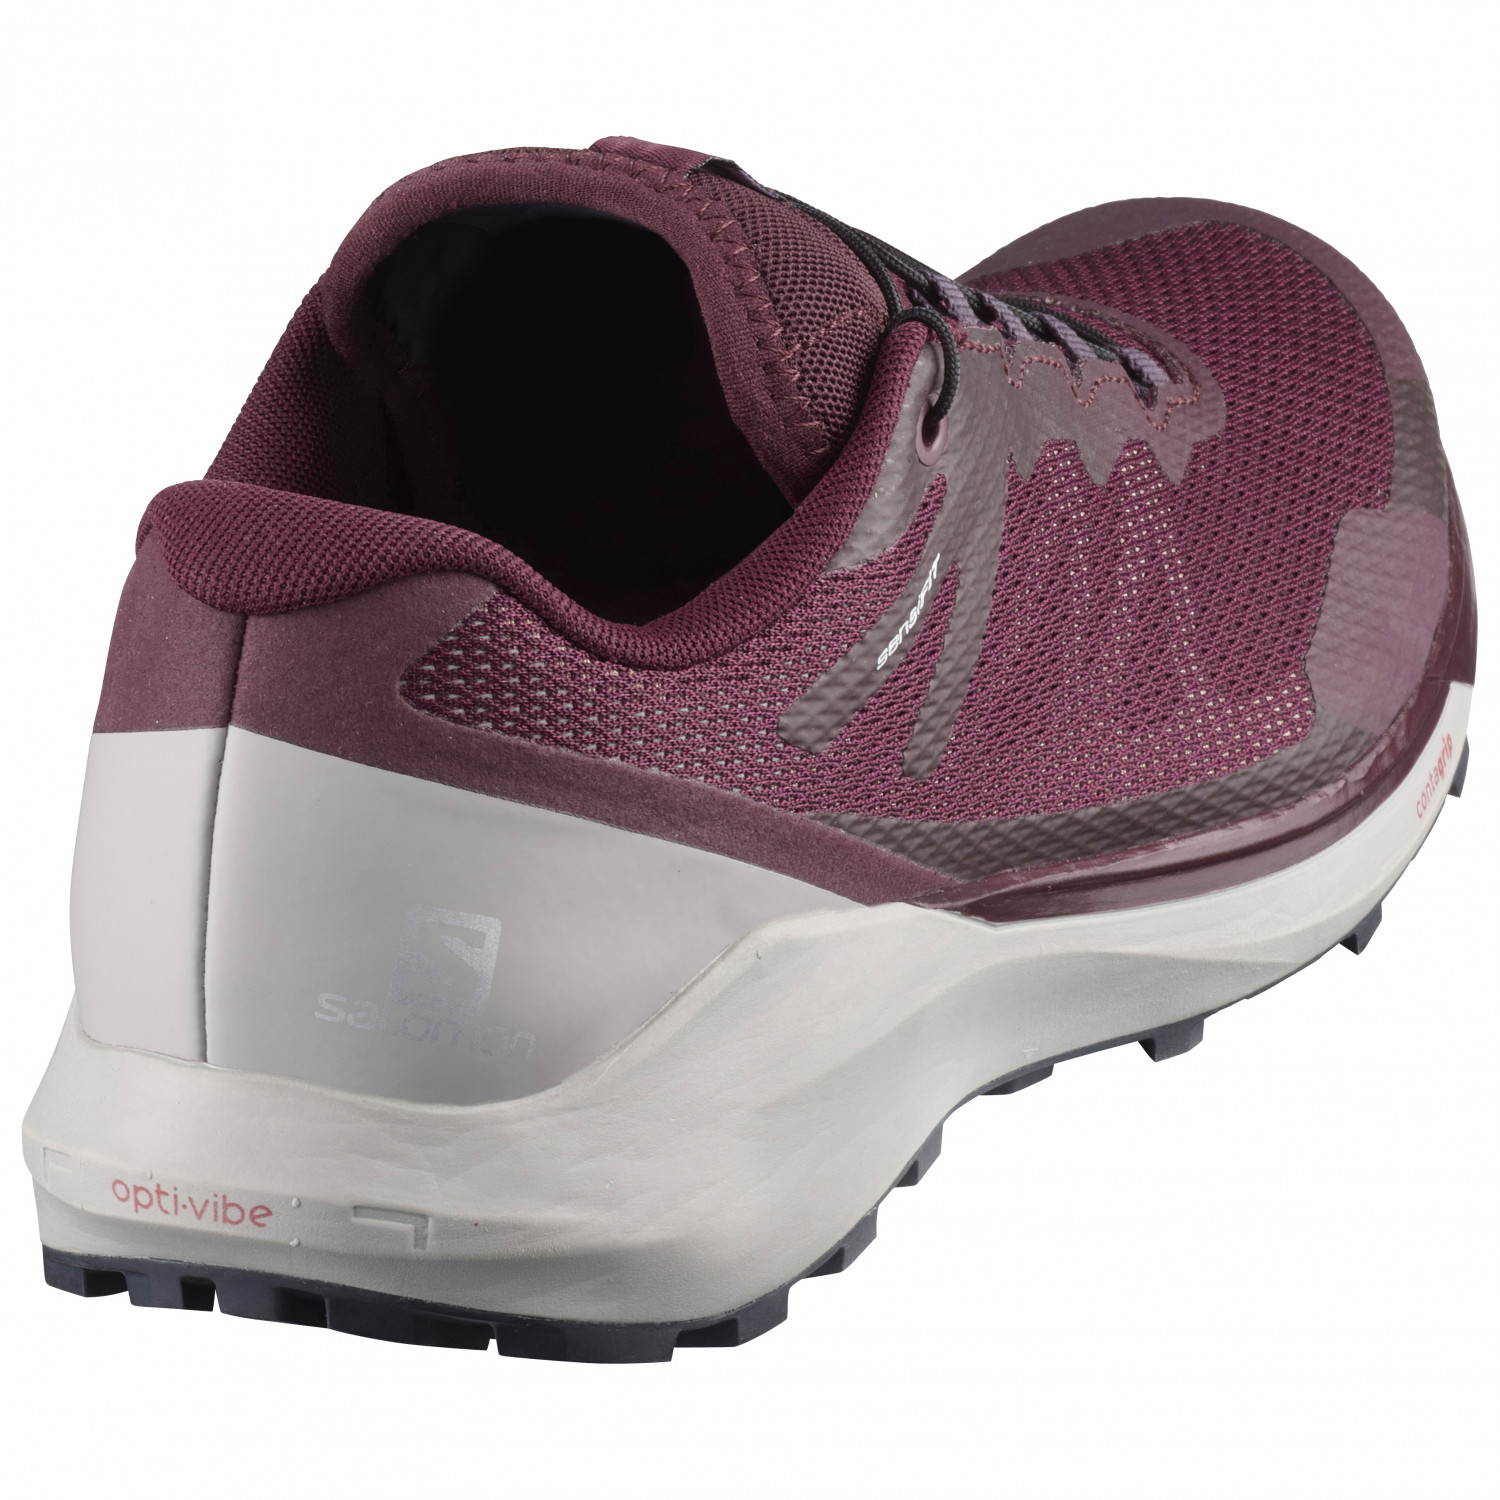 Salomon Sense Ride 3 Trailrunningschuhe Damen t1DI4